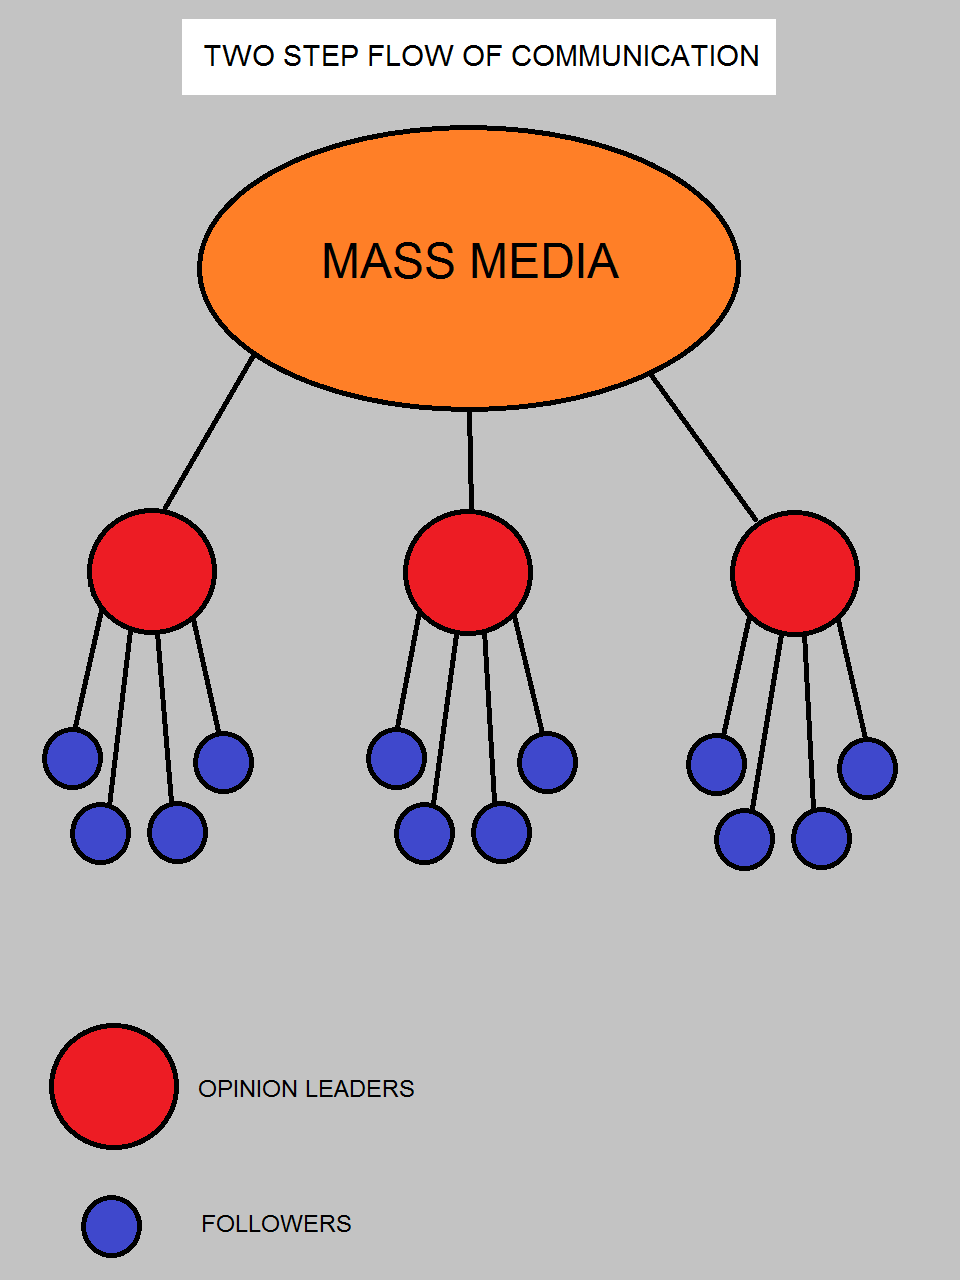 Two-step flow of communication - Wikipedia